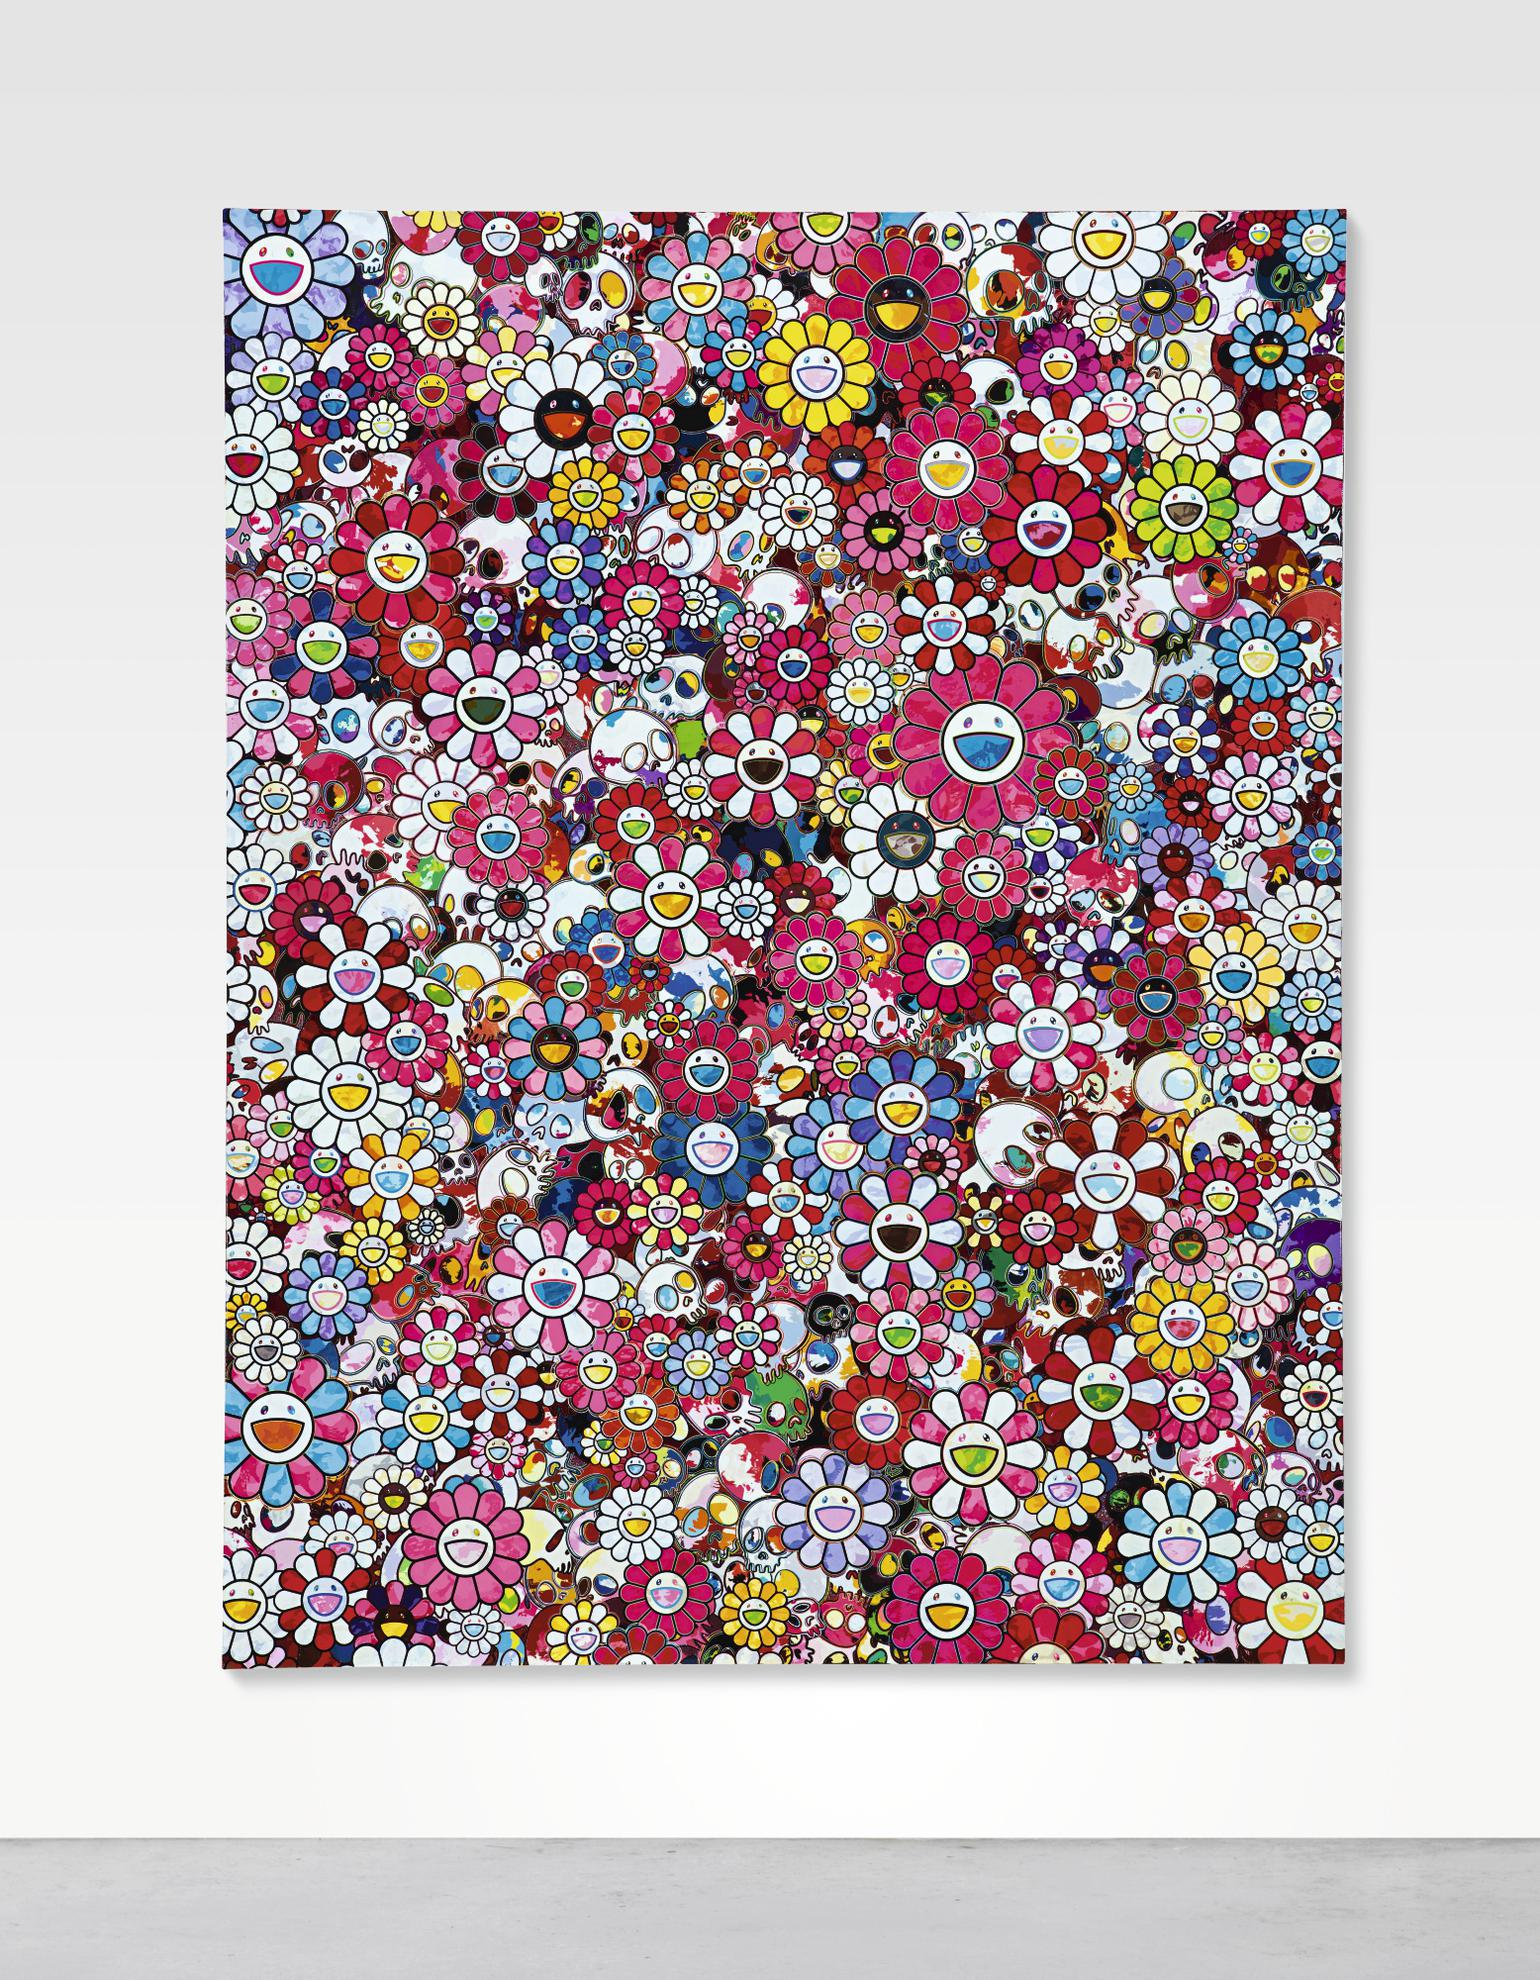 Takashi Murakami-Pink Circus: Embrace Peace And Darkness Within Thy Heart-2013